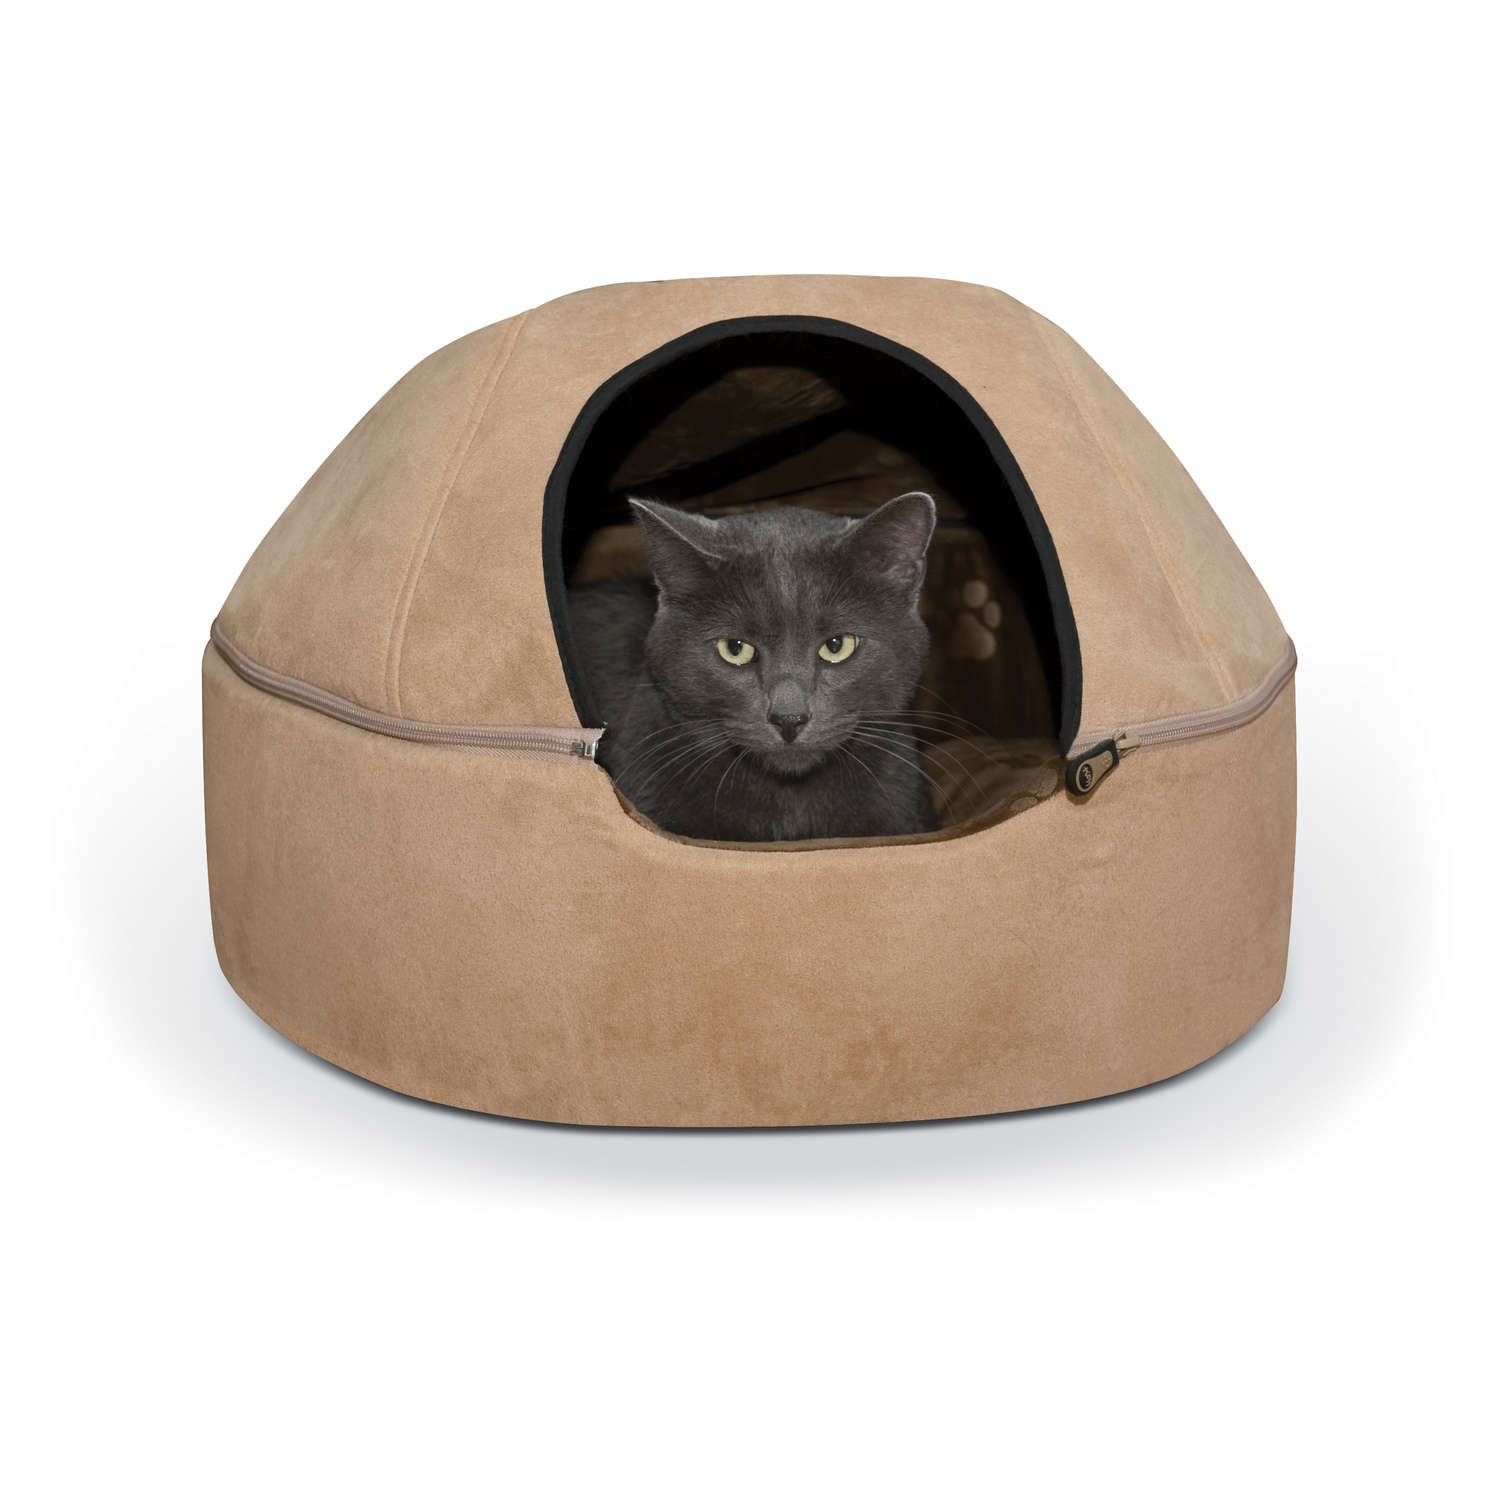 K&H Pet Products KH3896 Kitty Dome Bed Unheated